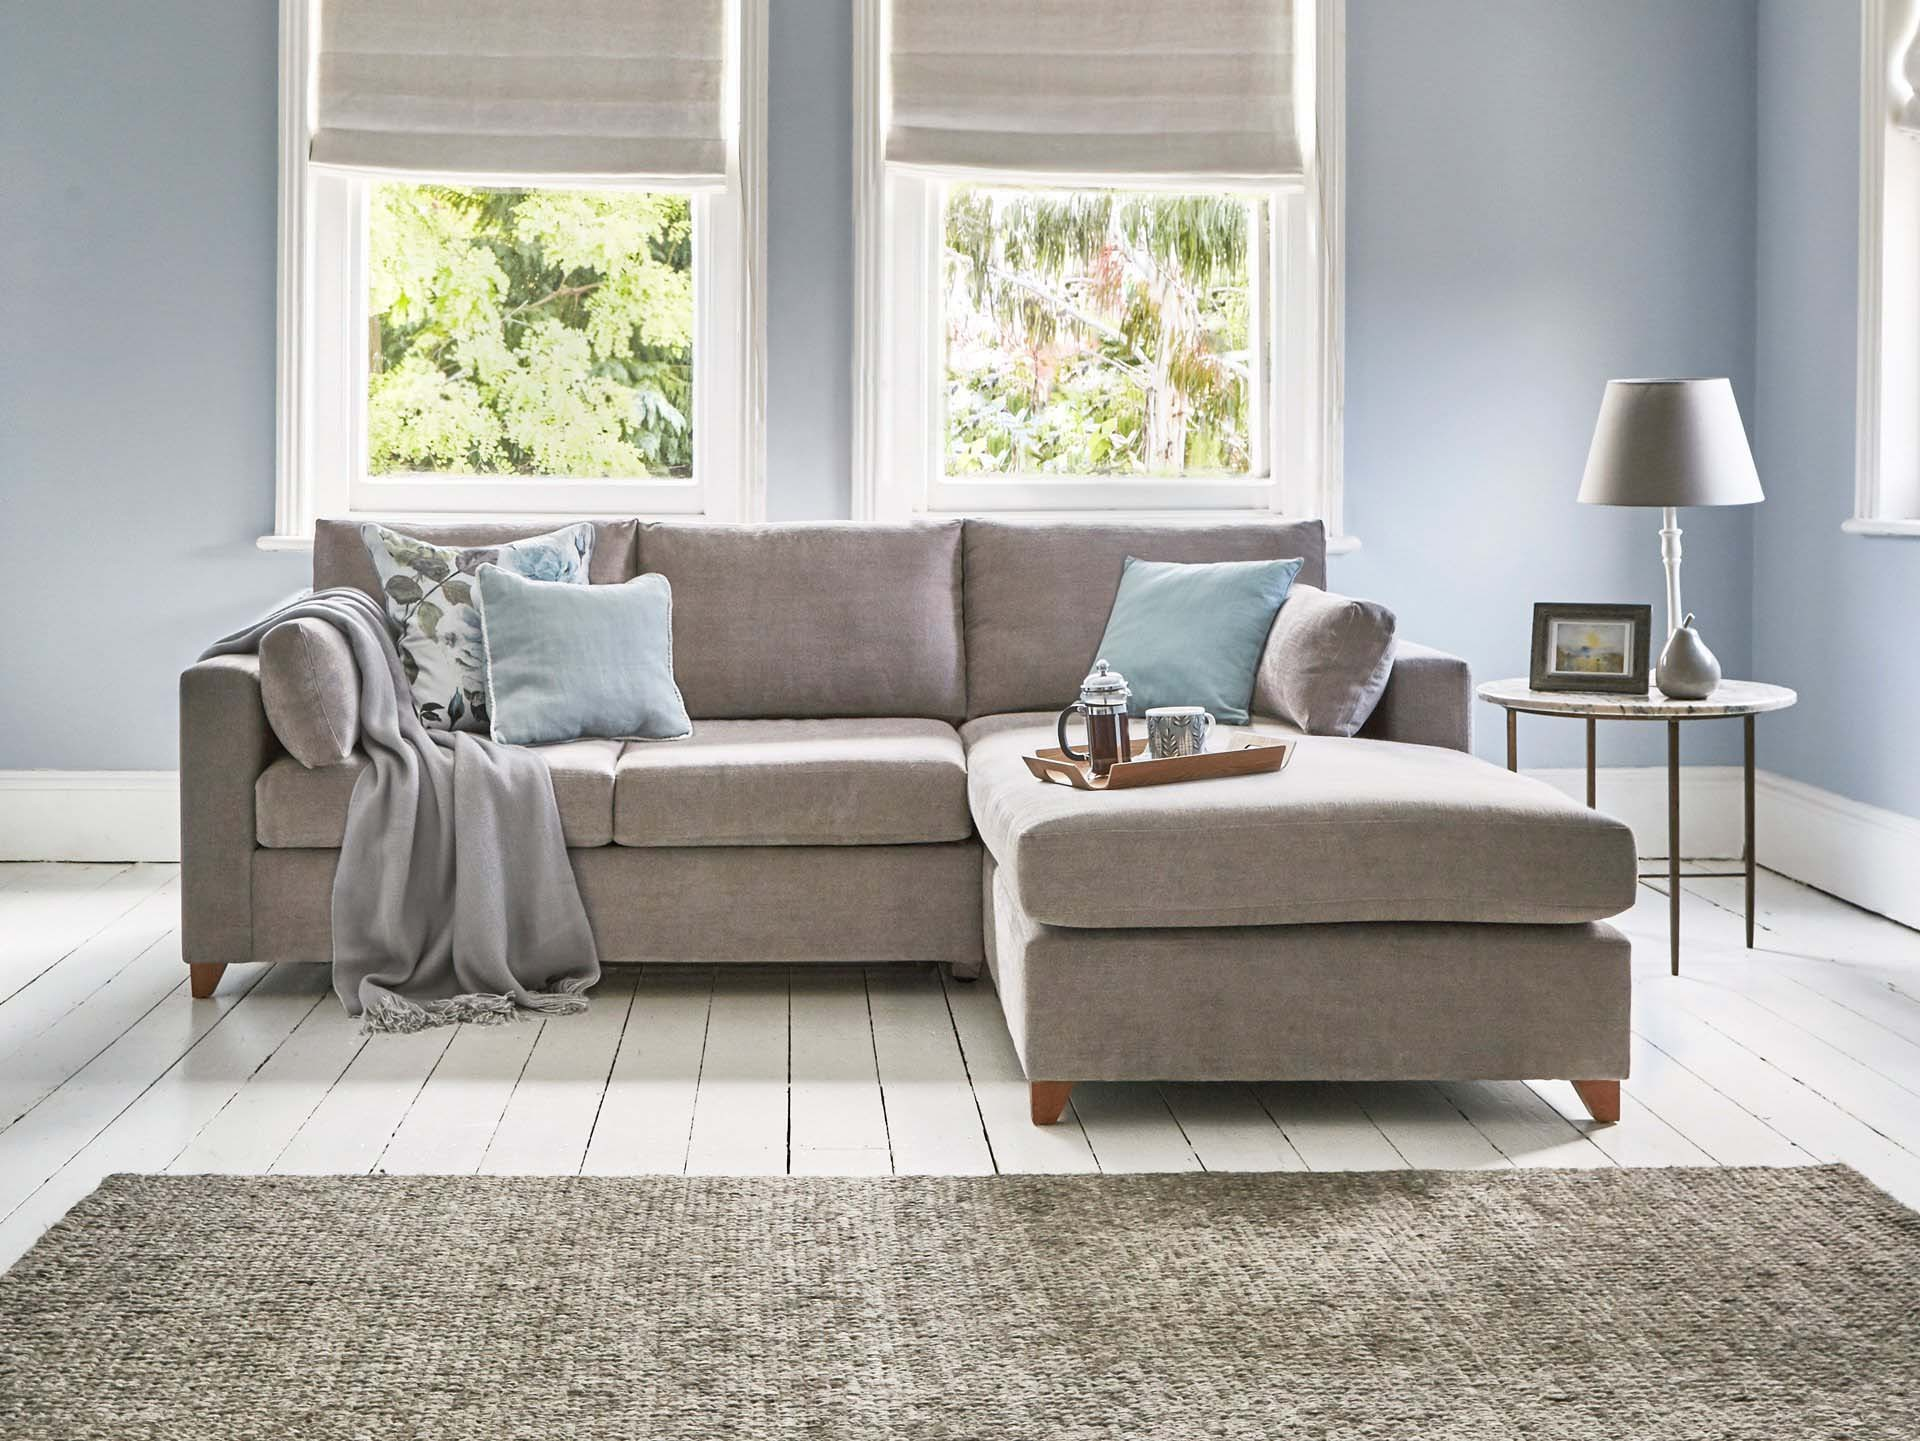 This is how I look in Stain Resistant Linen Cotton Dove as a right side chaise with reflex foam seat cushions